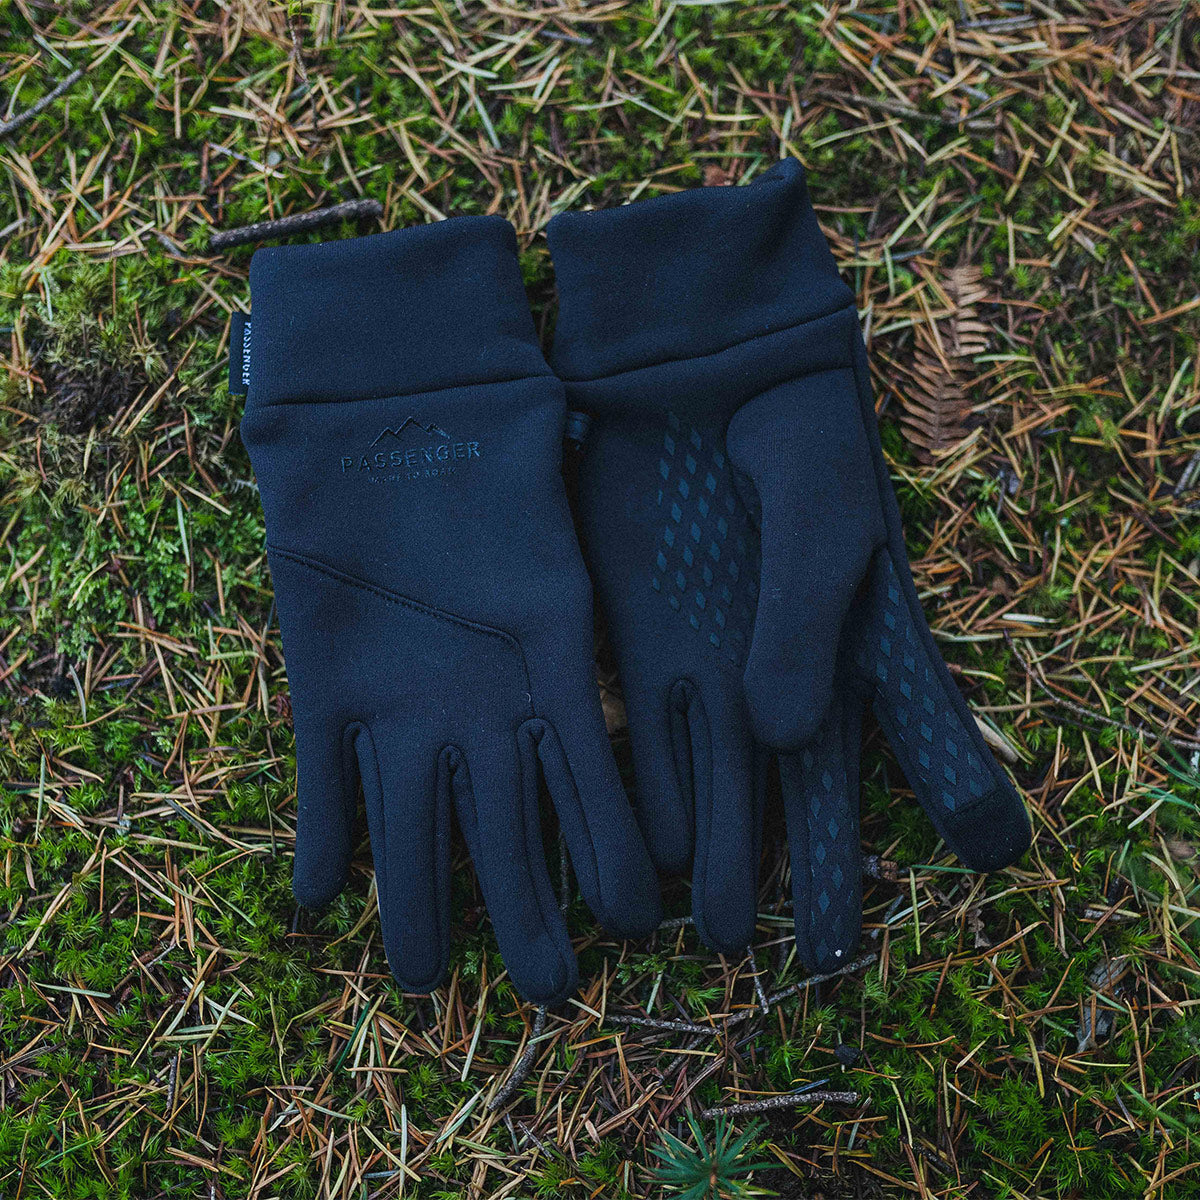 Jackson Gloves - Black image 6